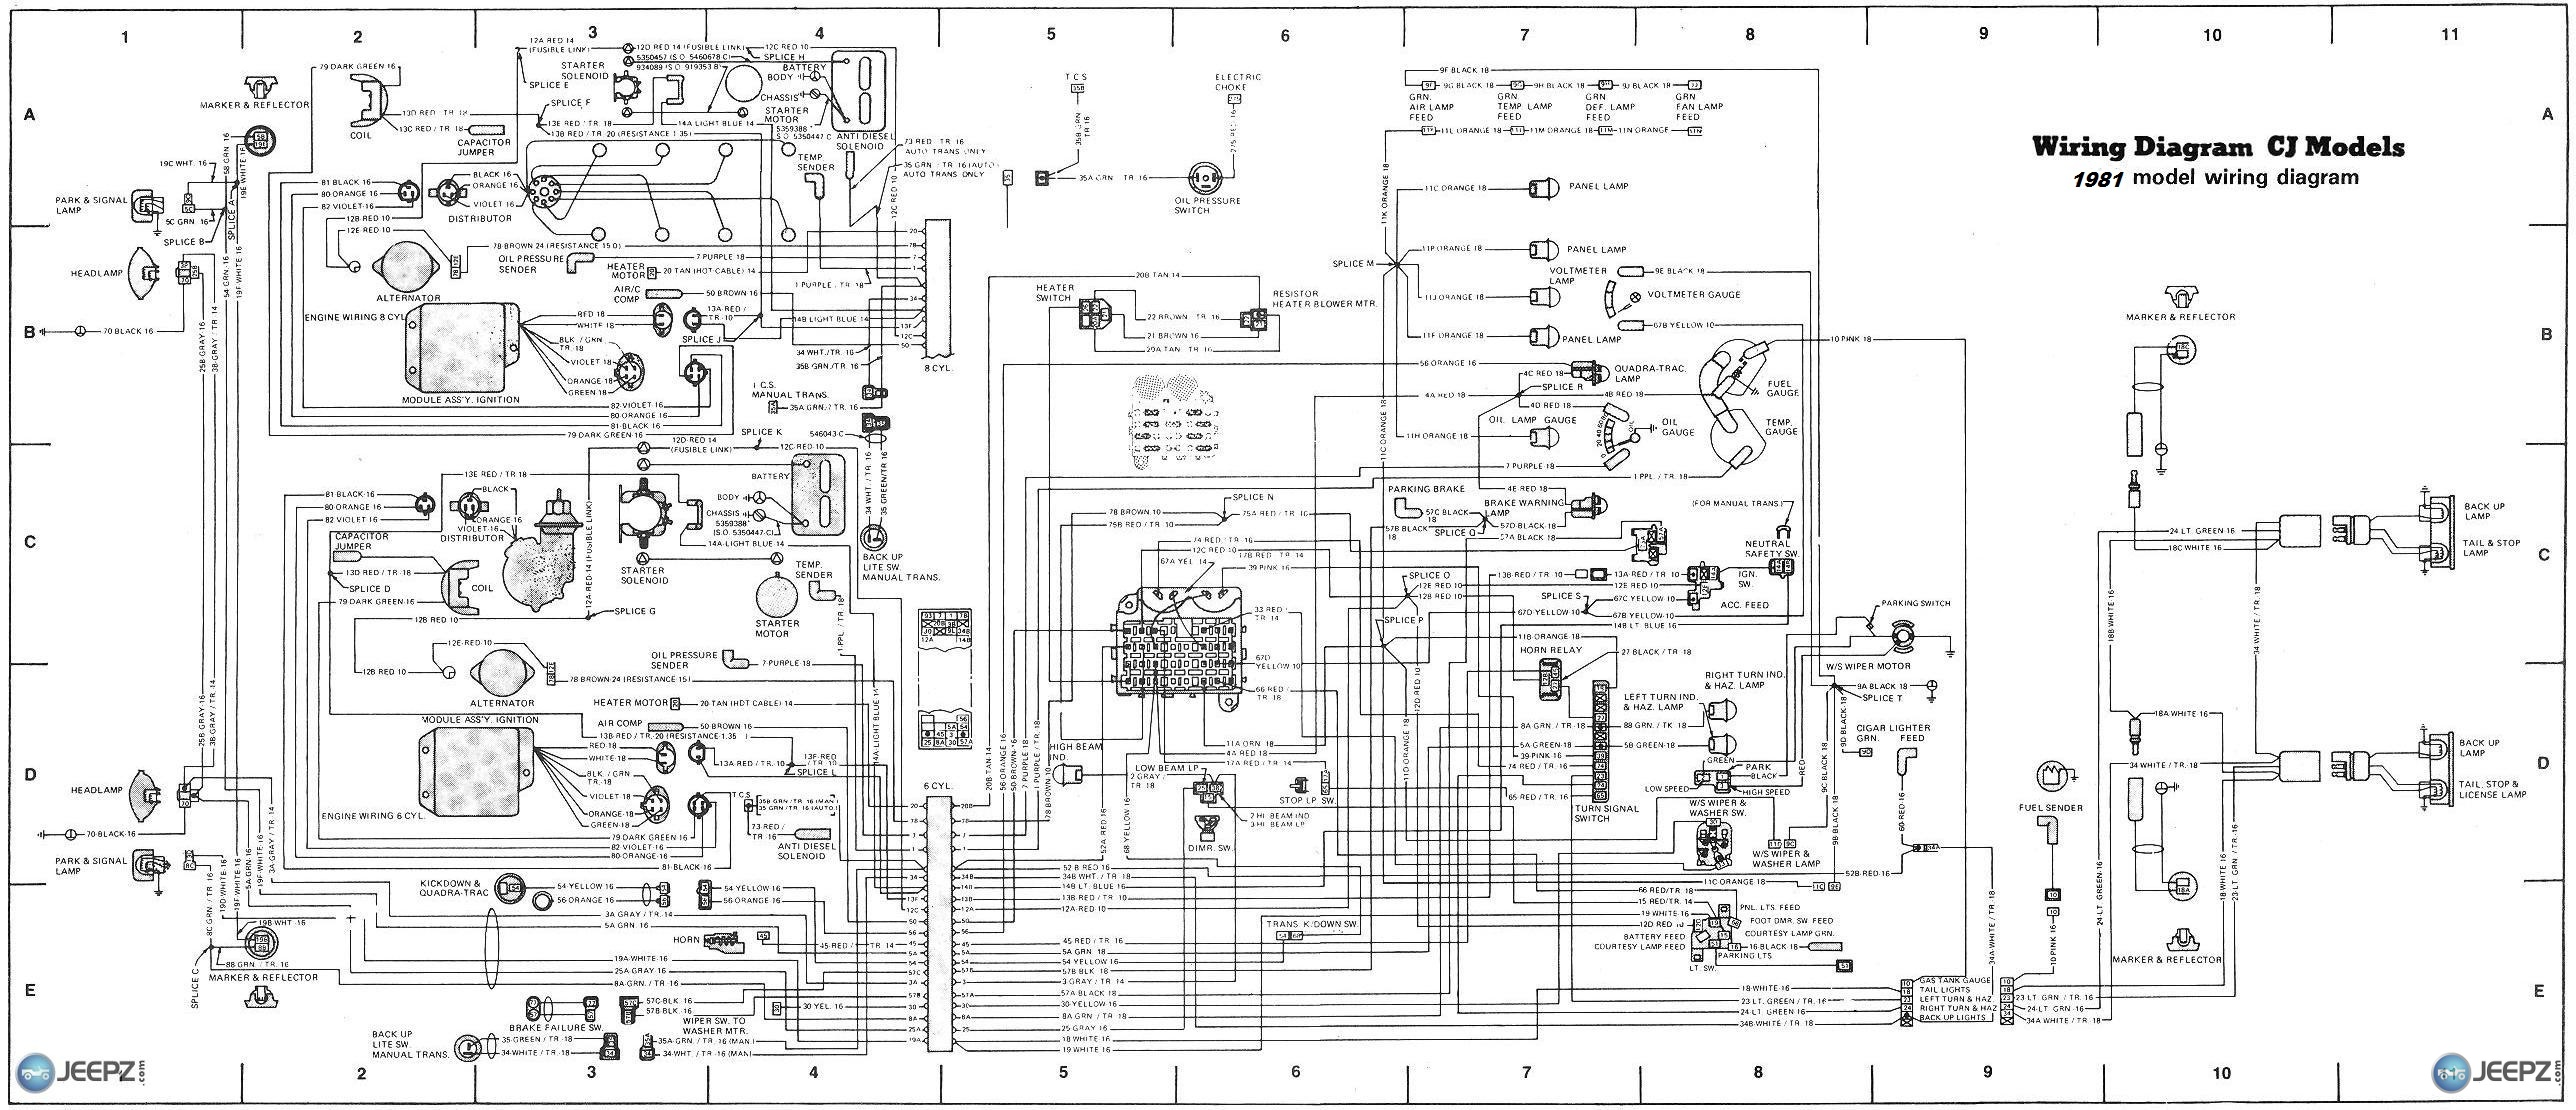 cj 7 wire diagram 2007 Jeep Wrangler Fuse Diagram 2008 Jeep Wrangler Fuse  Box Location